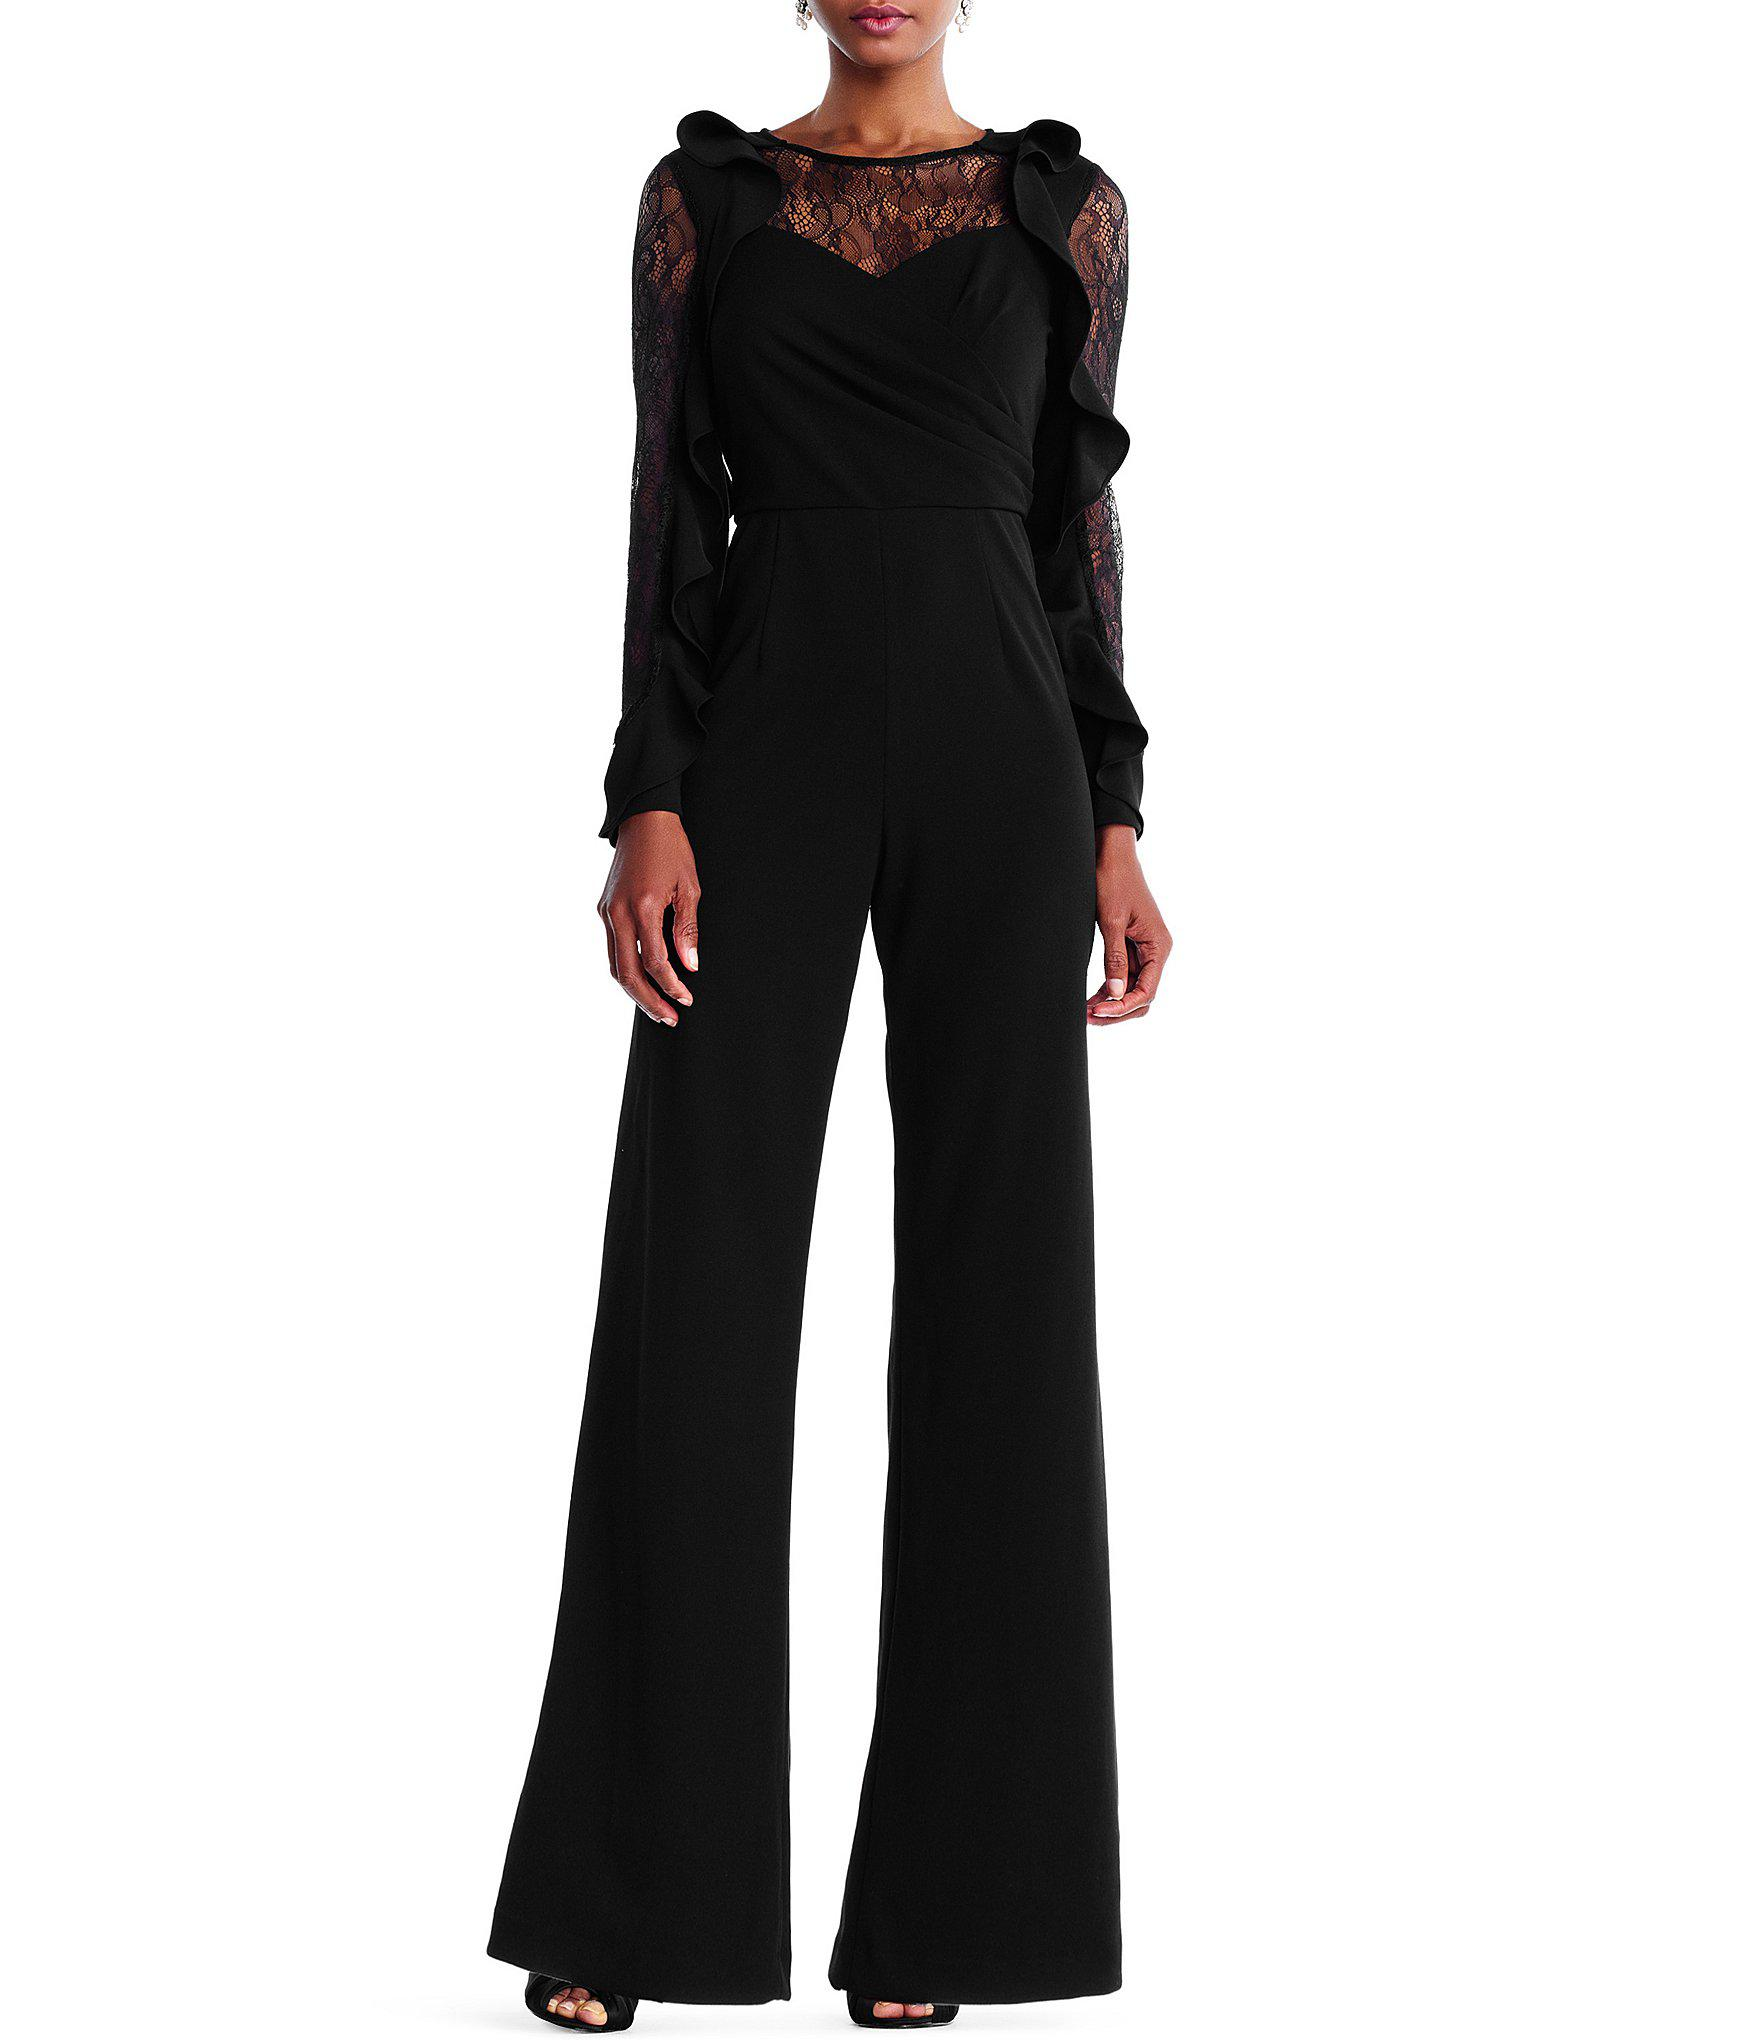 3c85adef4ec Lyst - Adrianna Papell Ruffled Sleeve Jumpsuit in Black